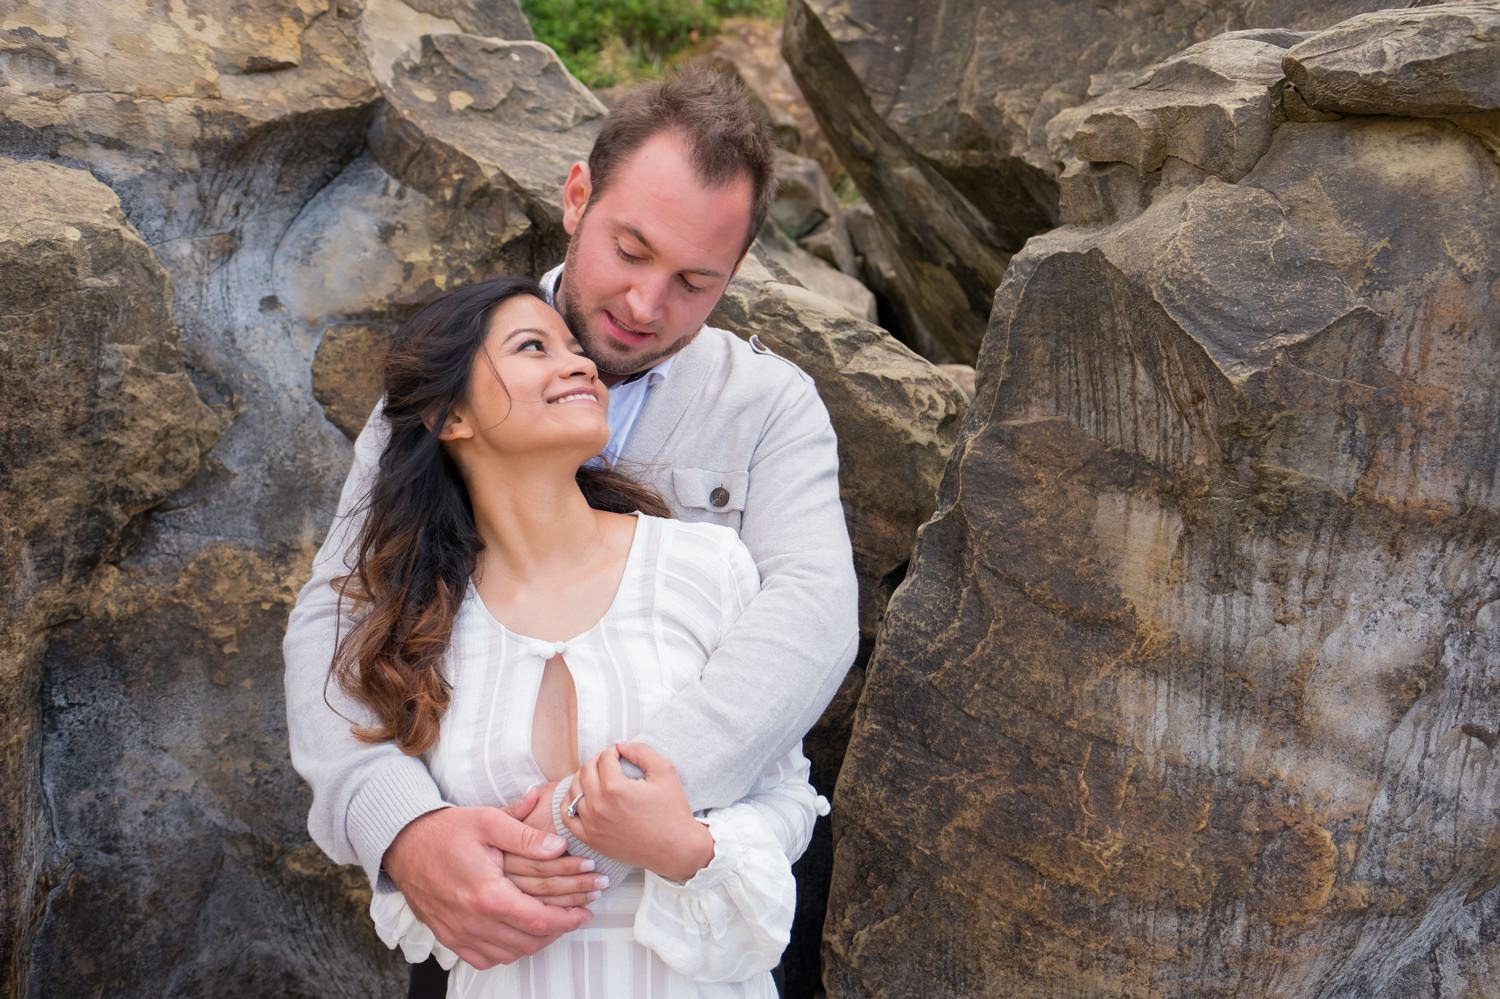 shore-acres-engagement-photos-010 Shore Acres Engagement Photos | Adventure Session Coos Bay | Shaminy & Jason